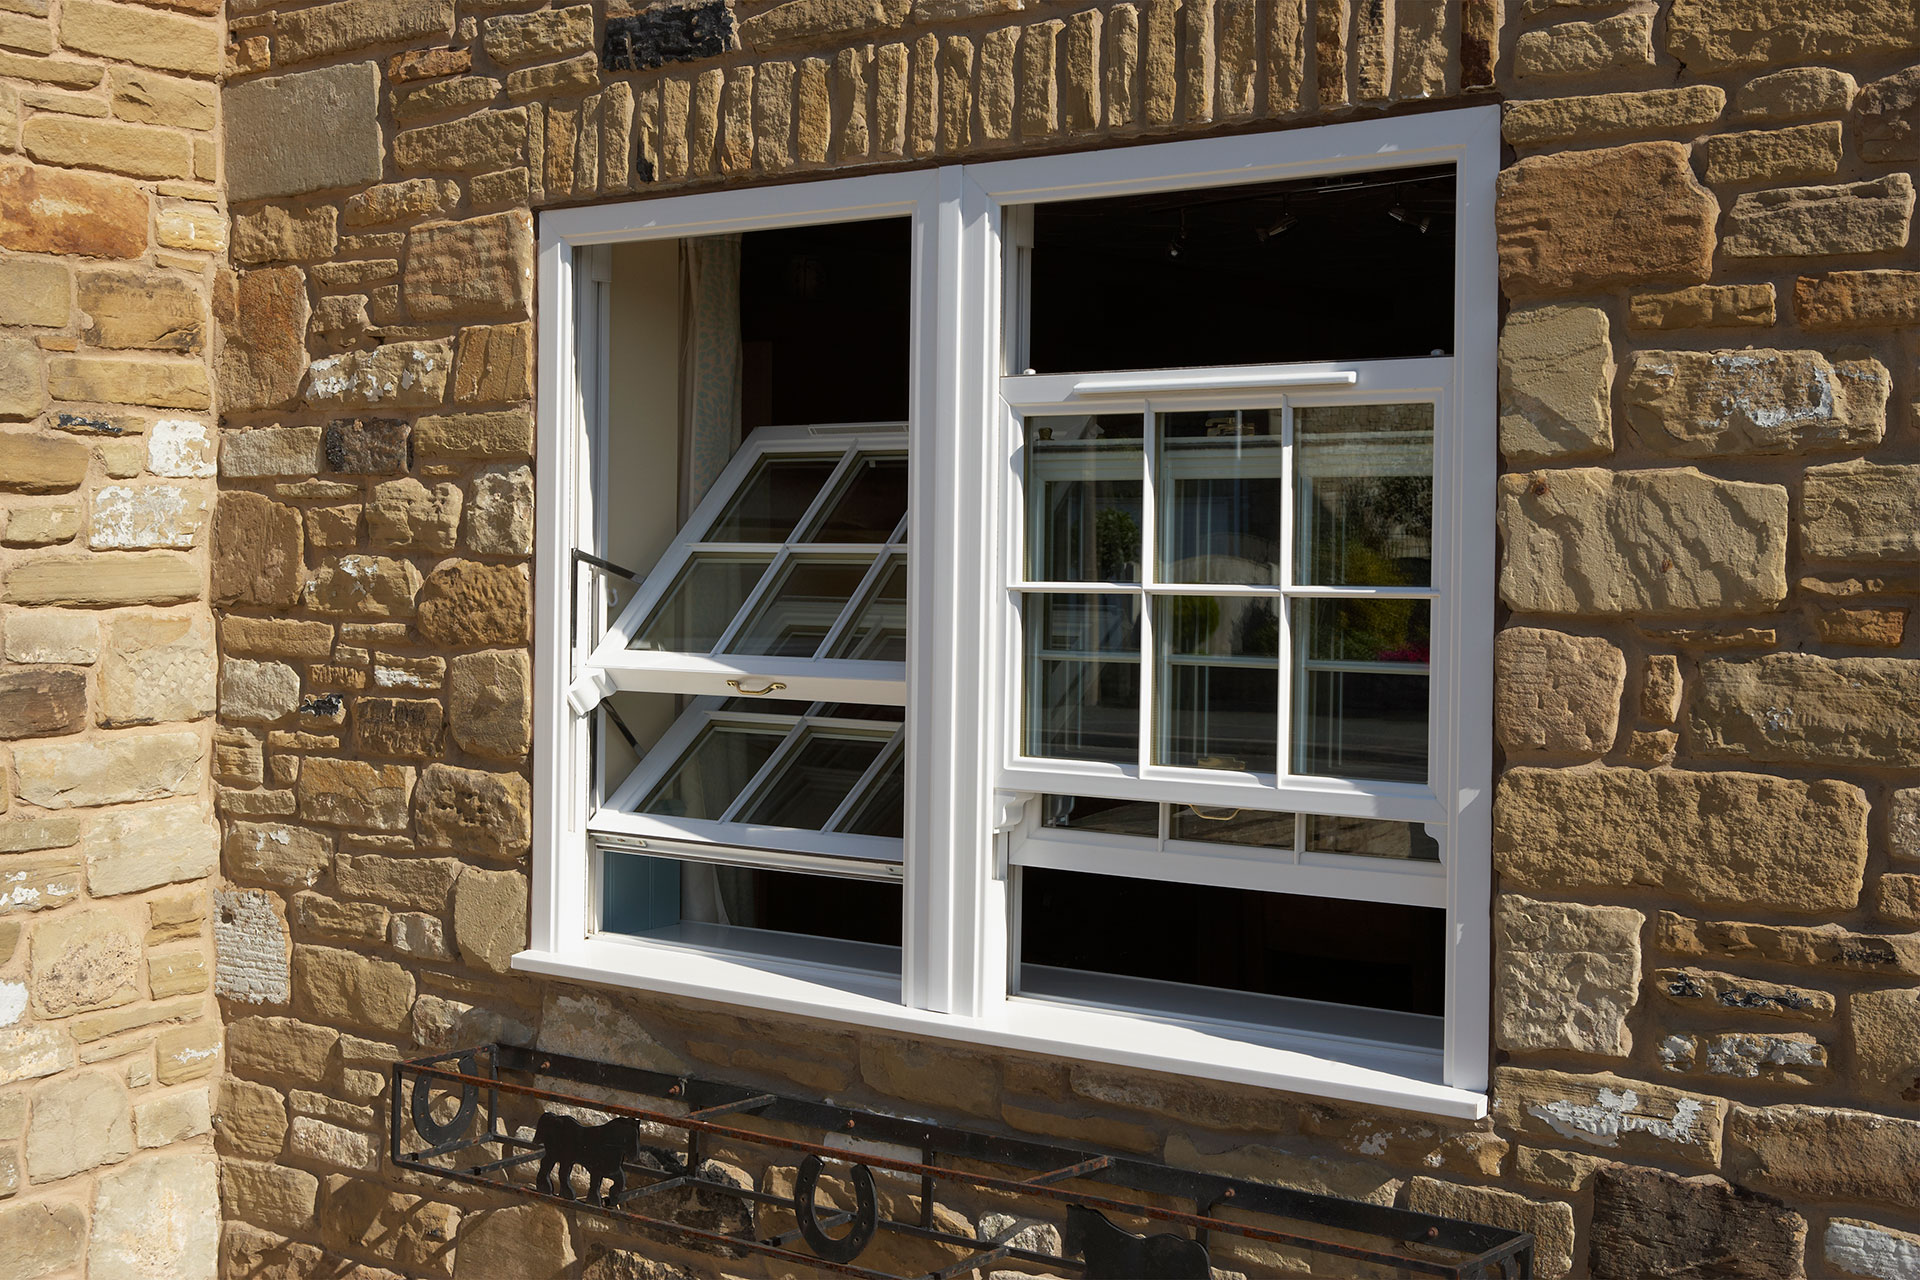 double glazing for original sash windows